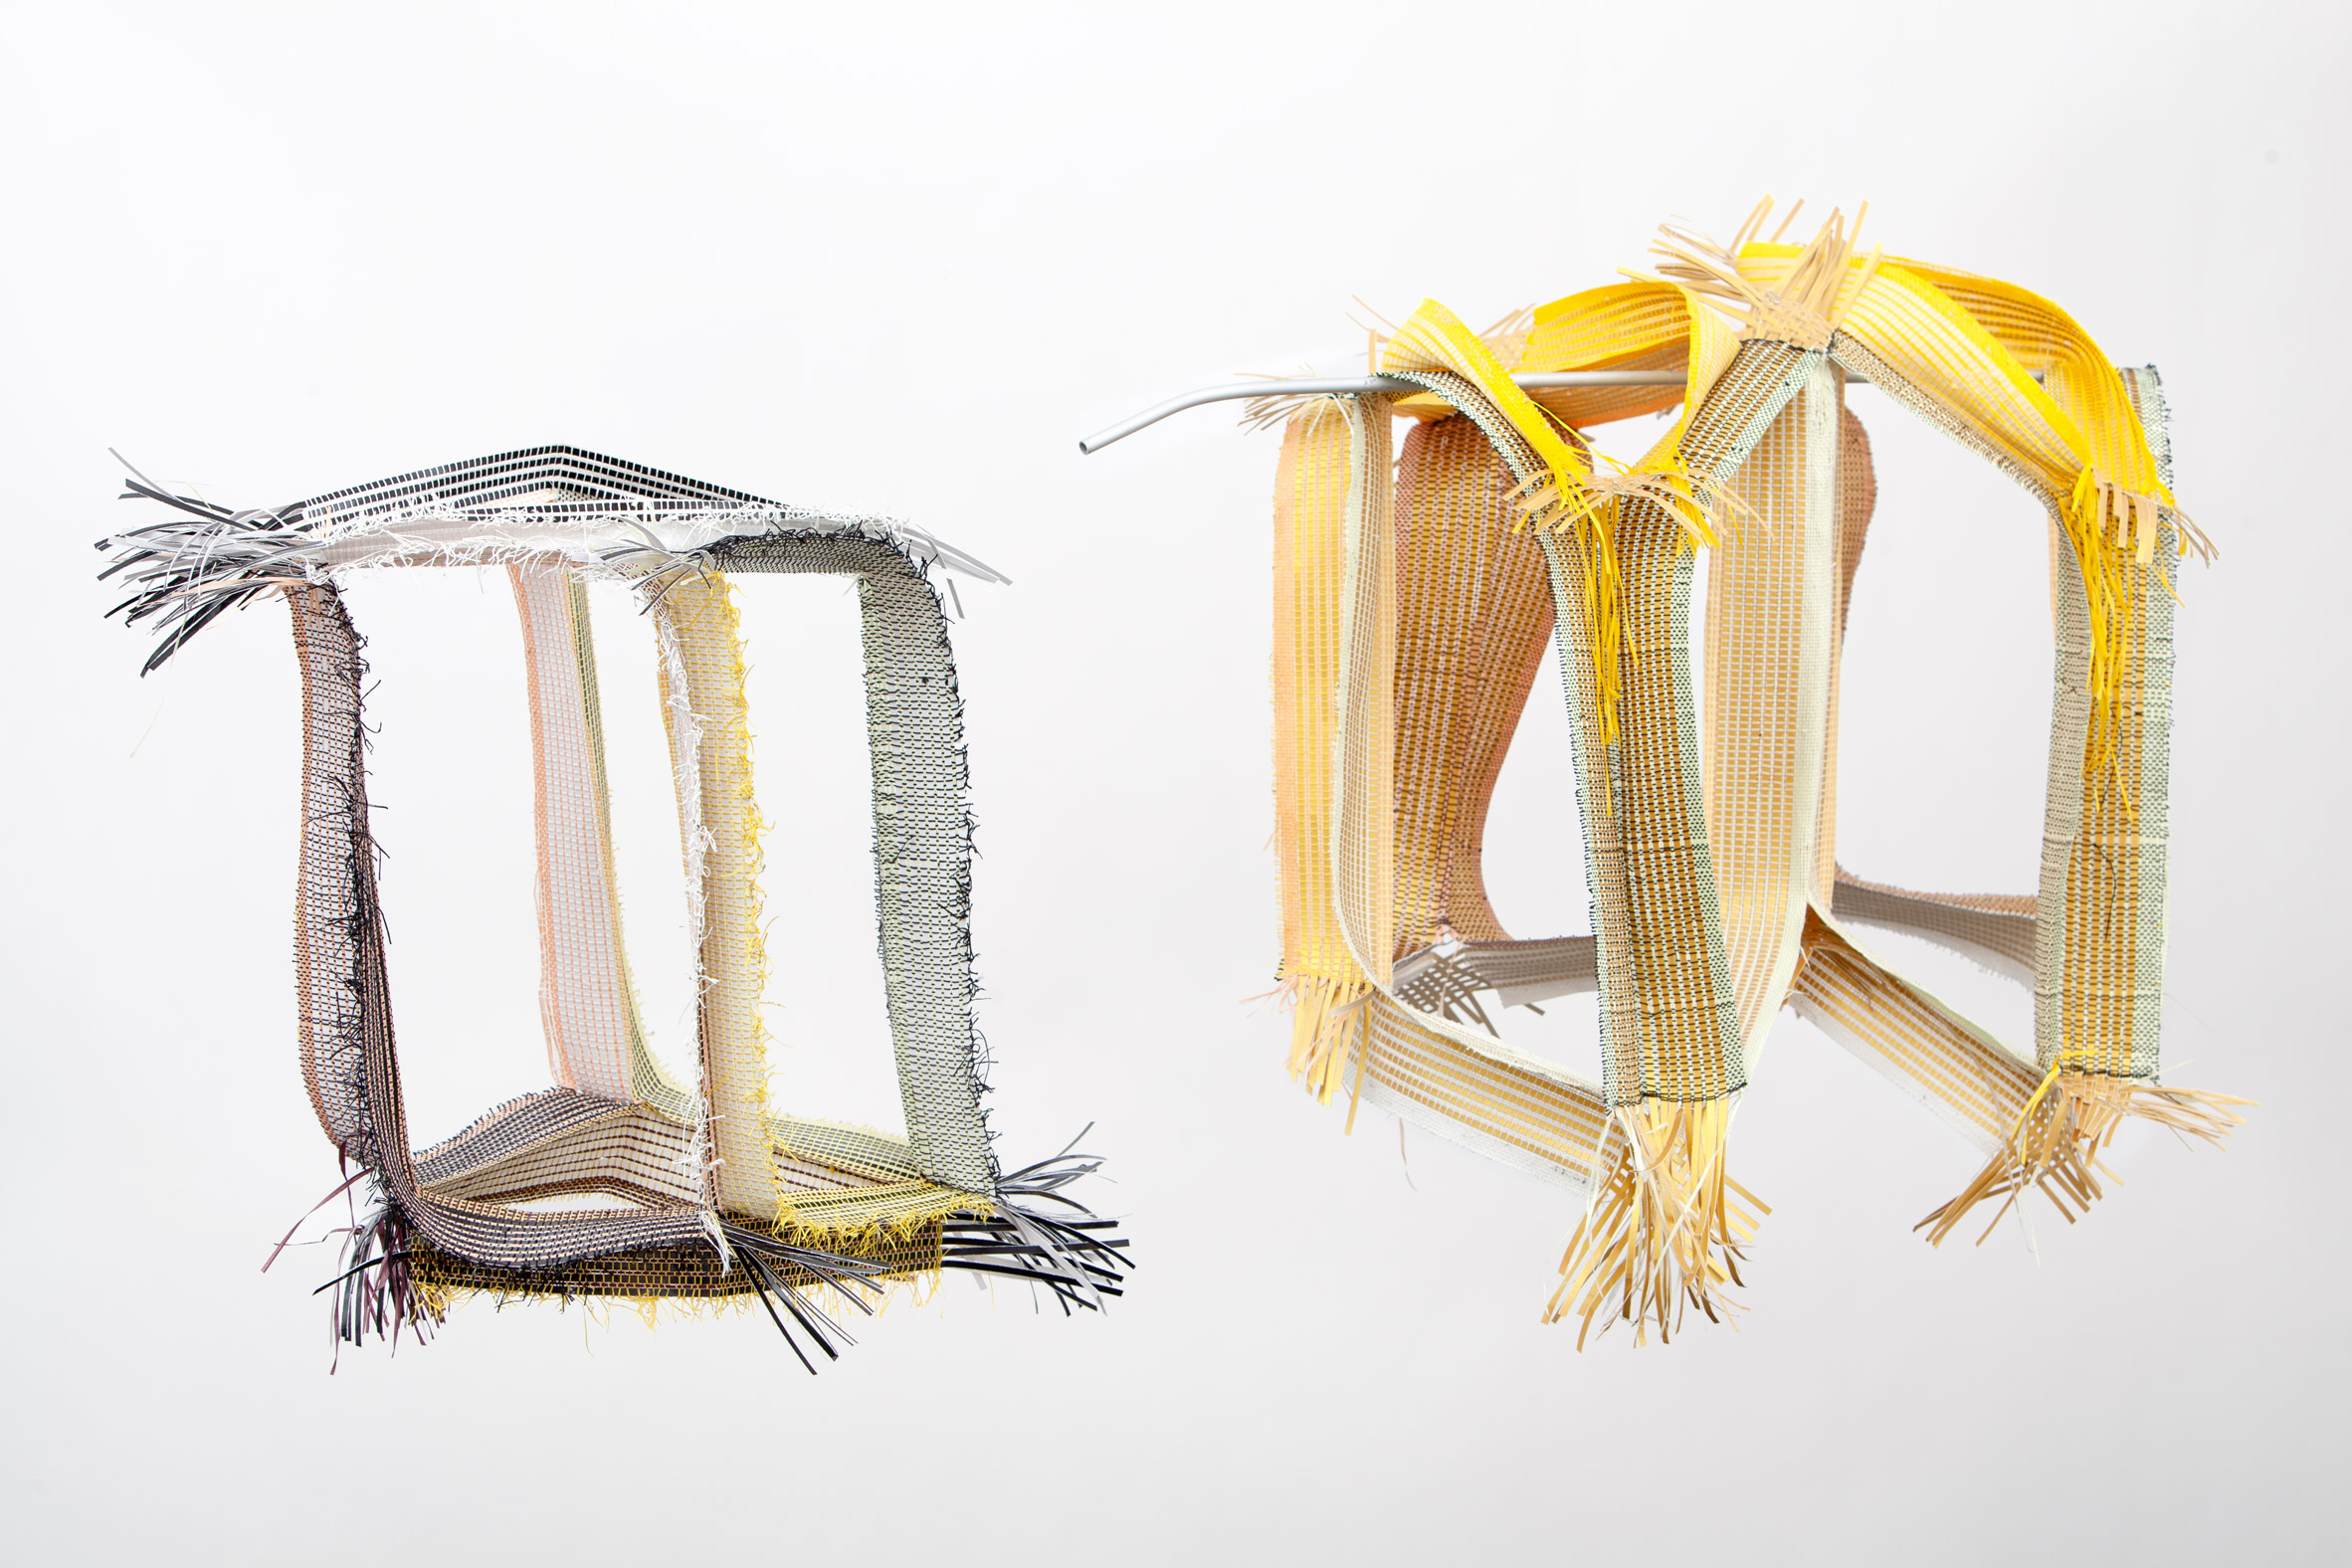 3D woven pliable architecture modules by Hella Jongerius